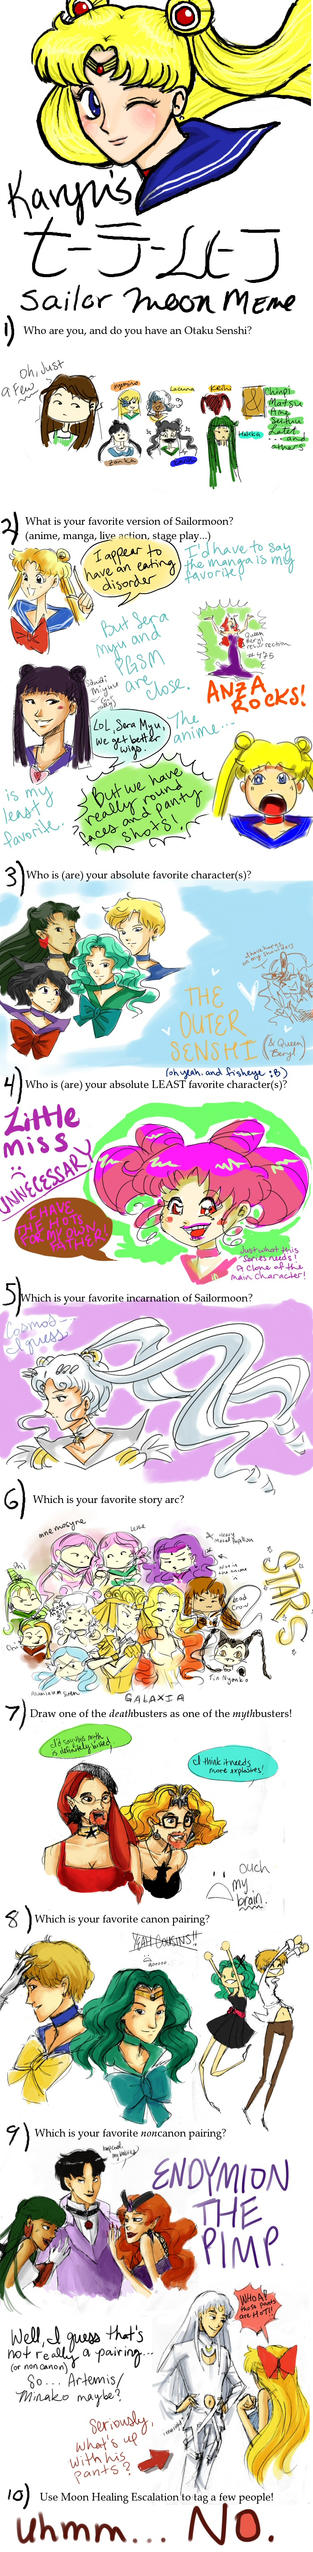 Sailor Moon Meme by It-is-a-circle